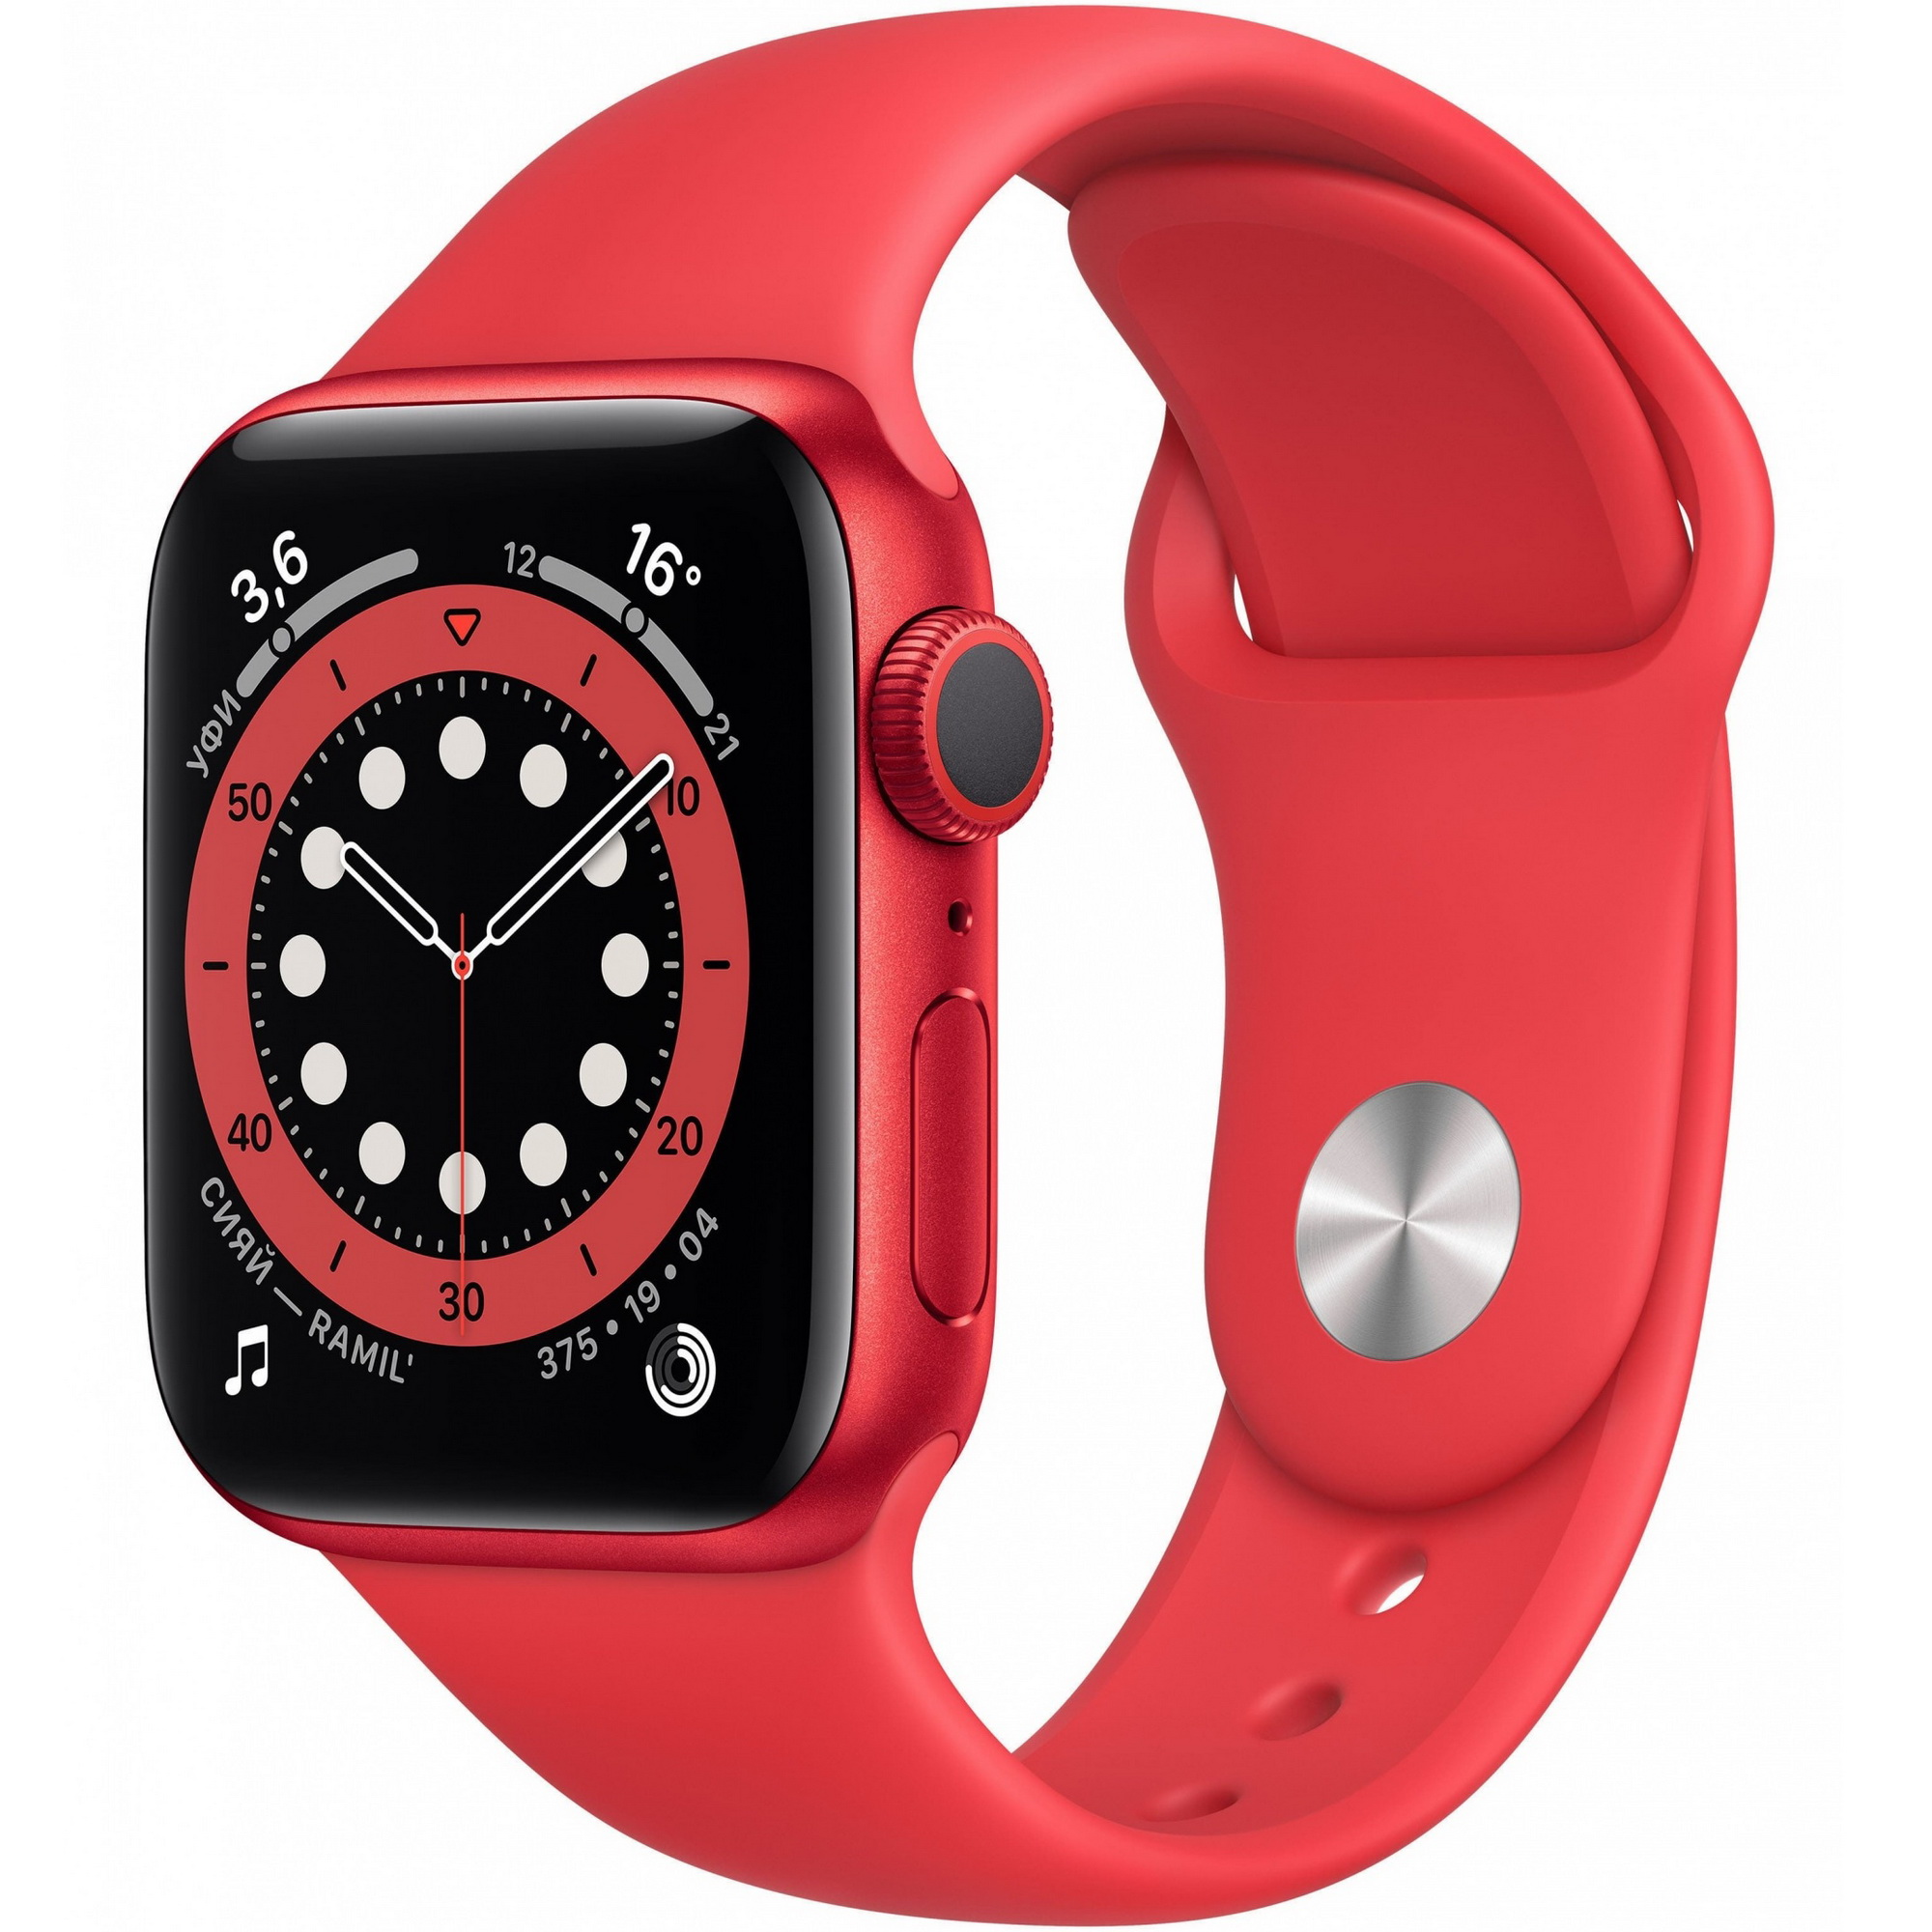 Фото - Смарт-часы Apple Watch Series 6 GPS 40 мм Red Sport Band M00A3RU/A masaqi stainless steel watch band for tissot t035 prc200 t41 watchband butterfly buckle strap l164 l264 high quality strap